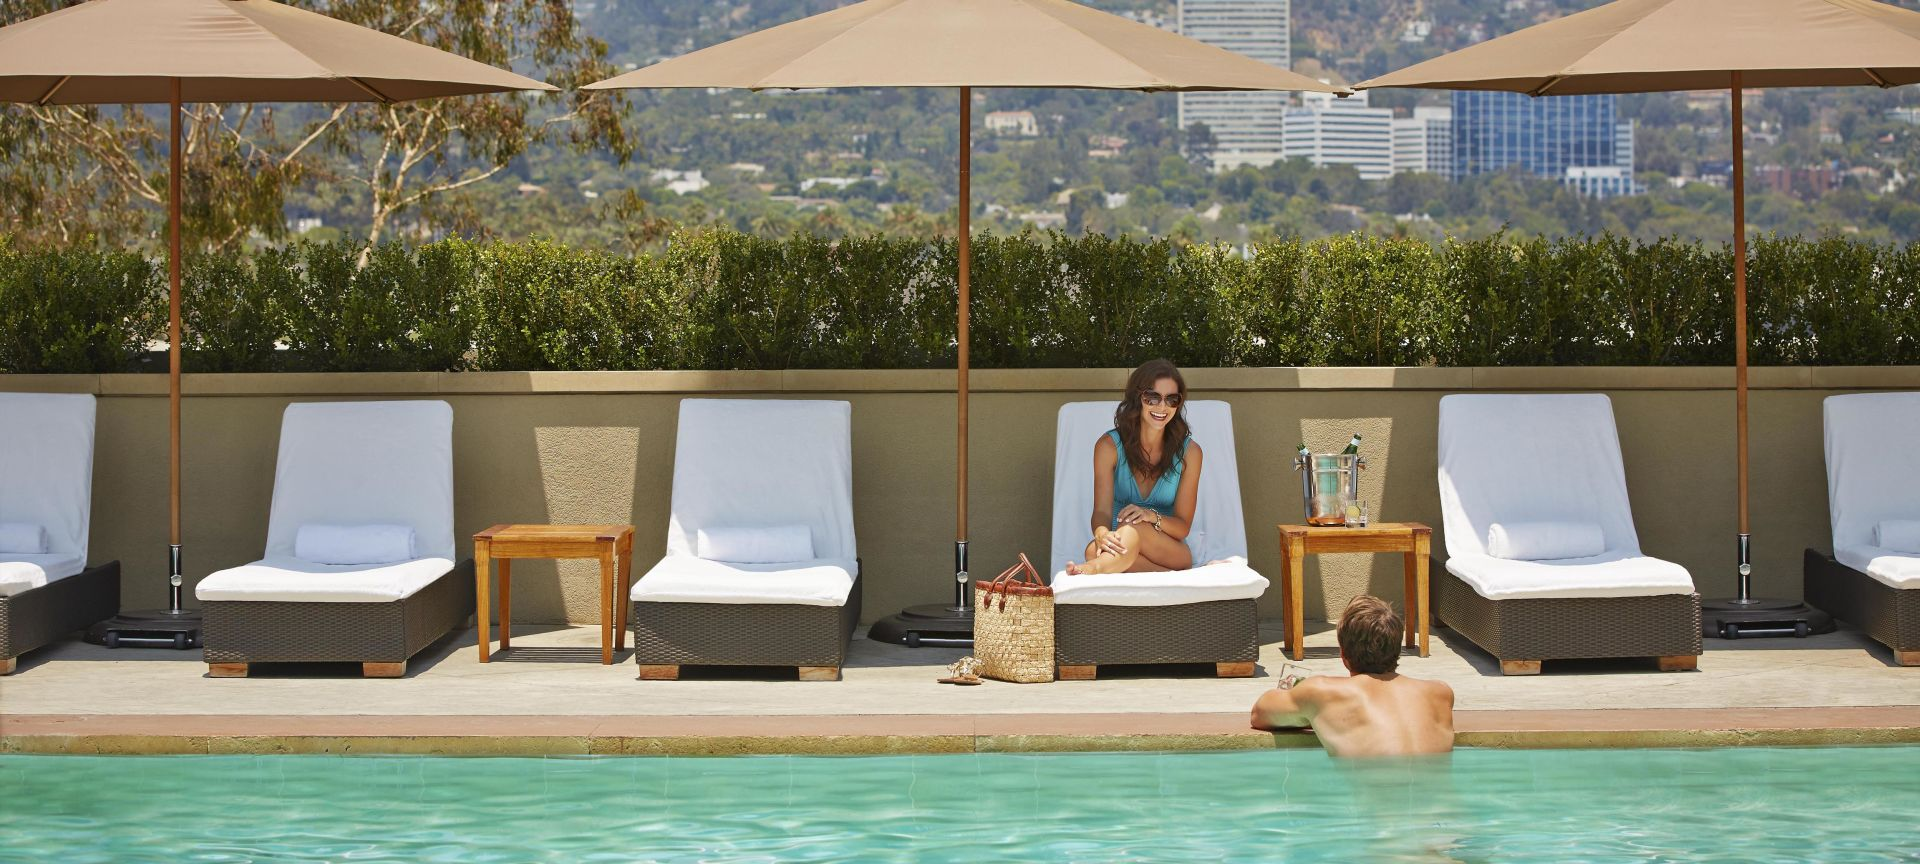 Guests enjoying the pool at Viceroy L'Ermitage Beverly Hills